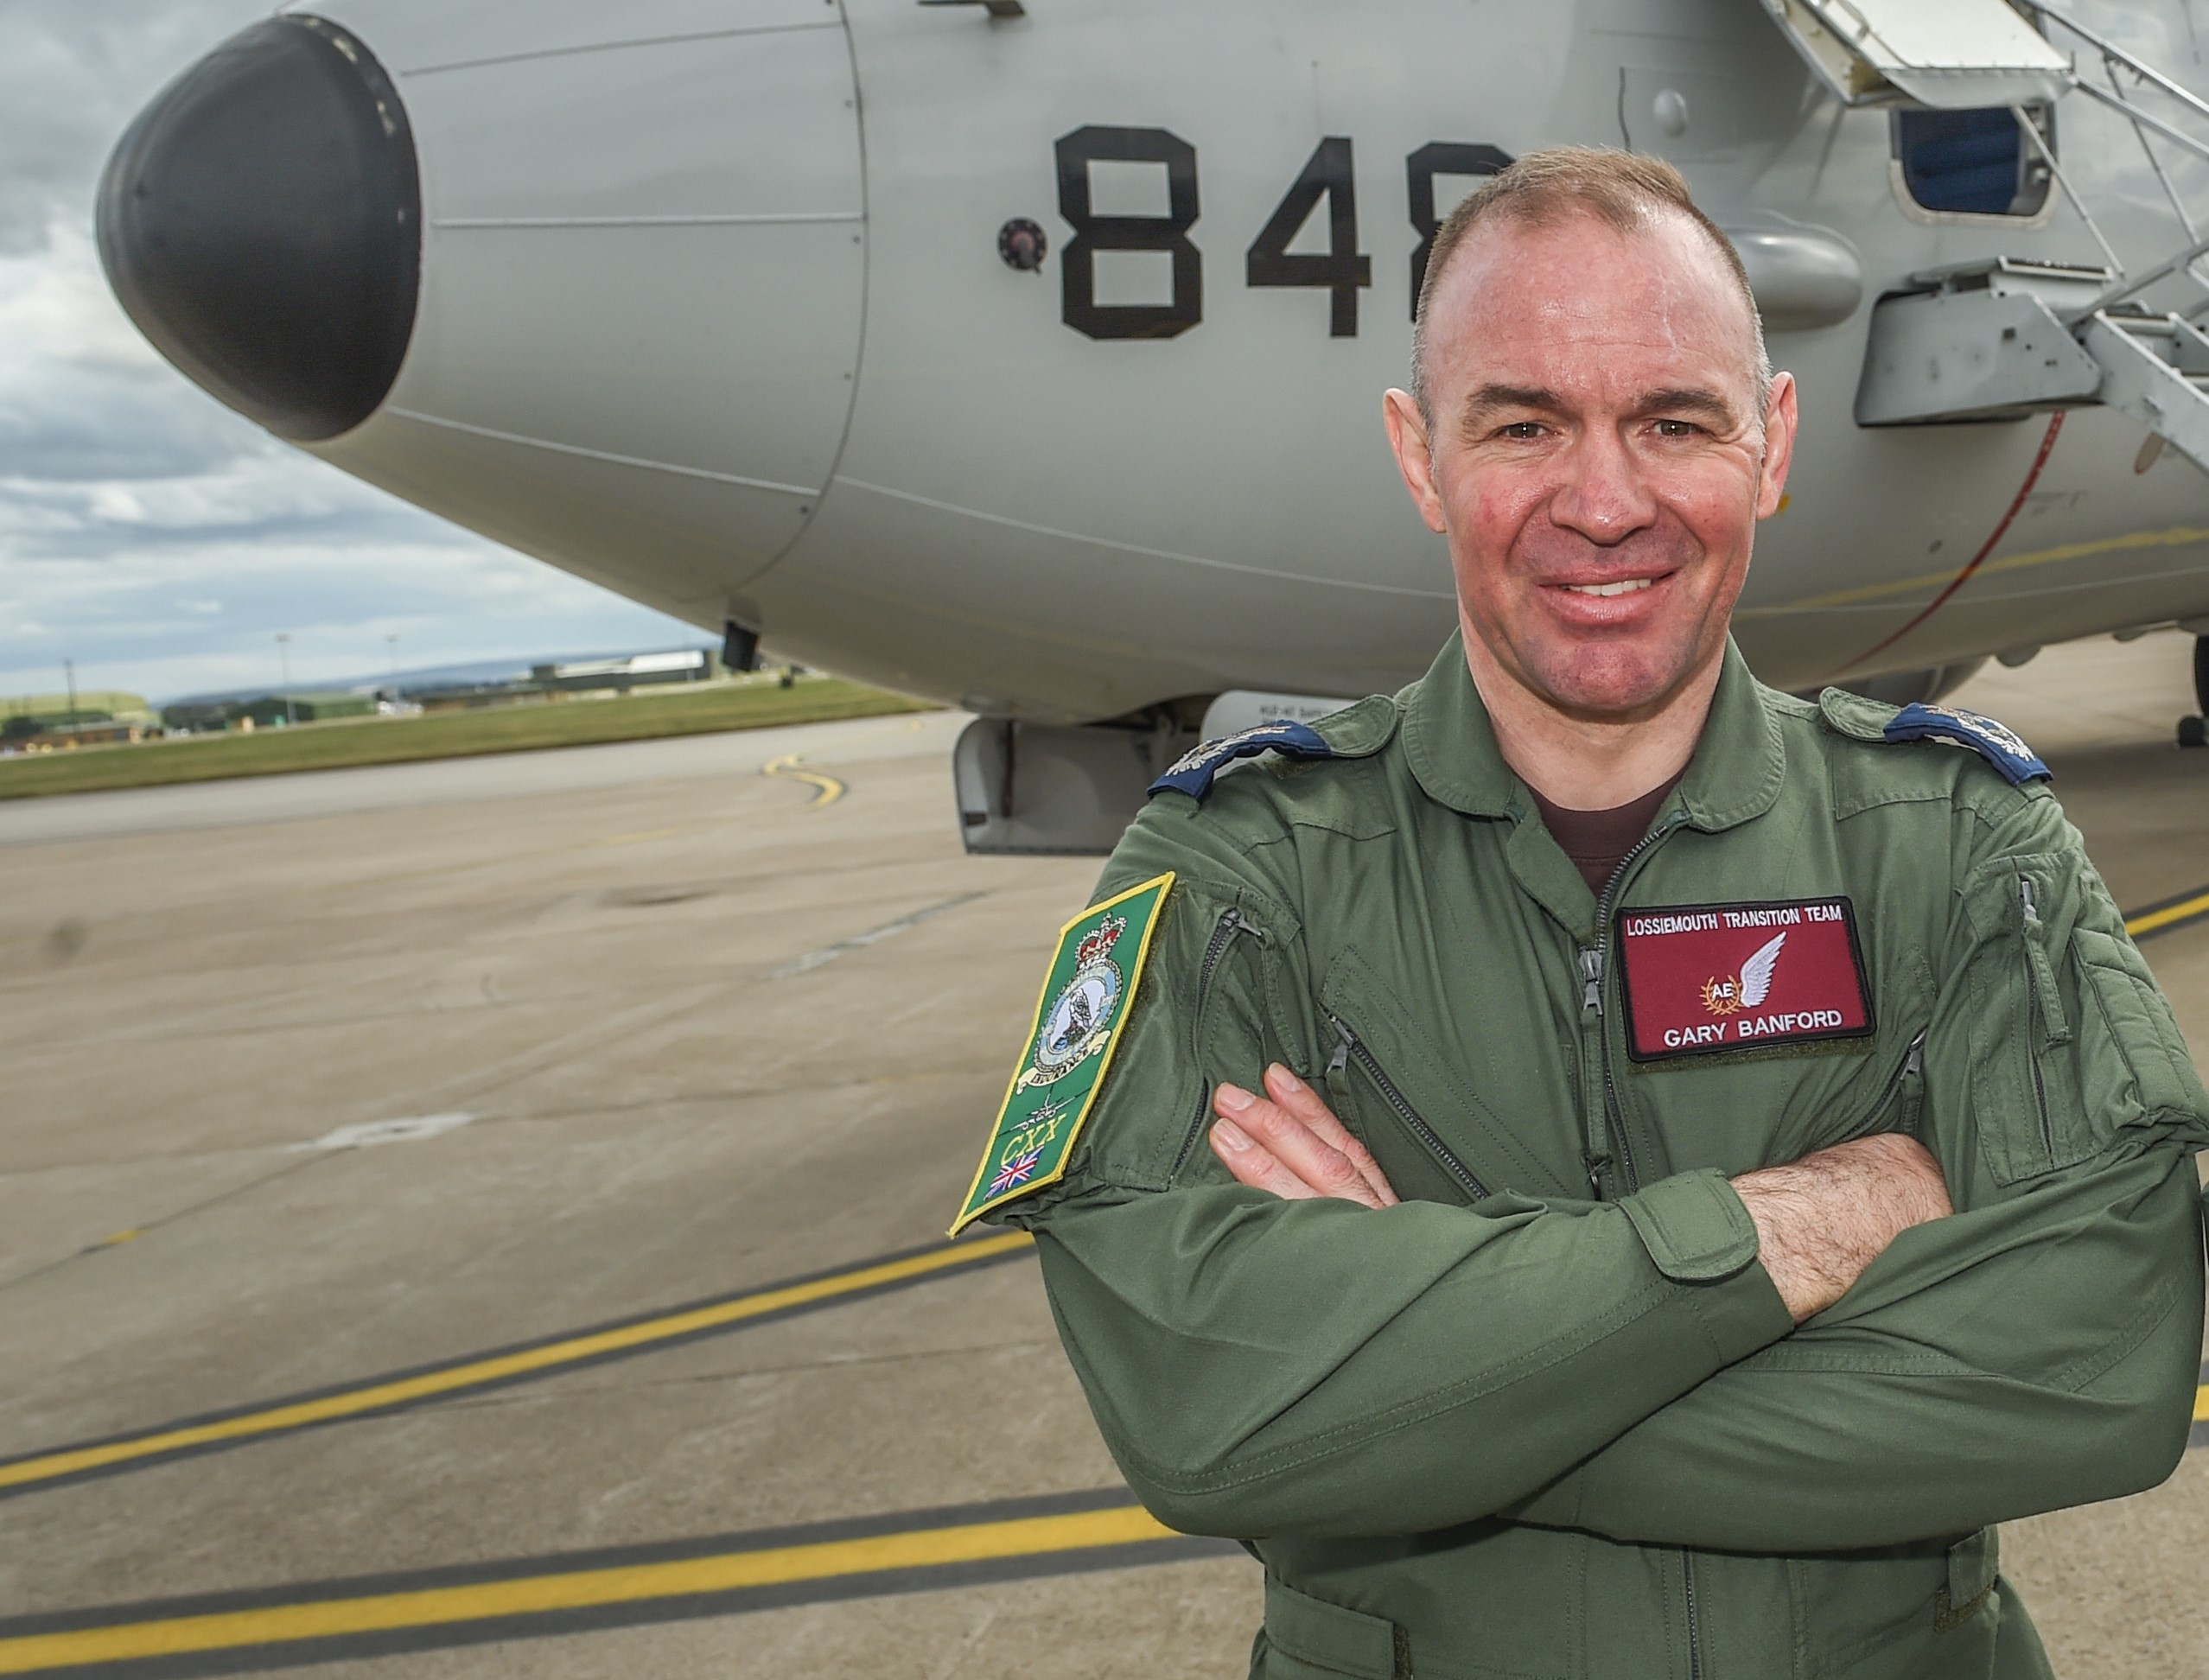 RAF Lossiemouth 120 Squadron warrant officer Gary Banford. Picture by JASON HEDGES